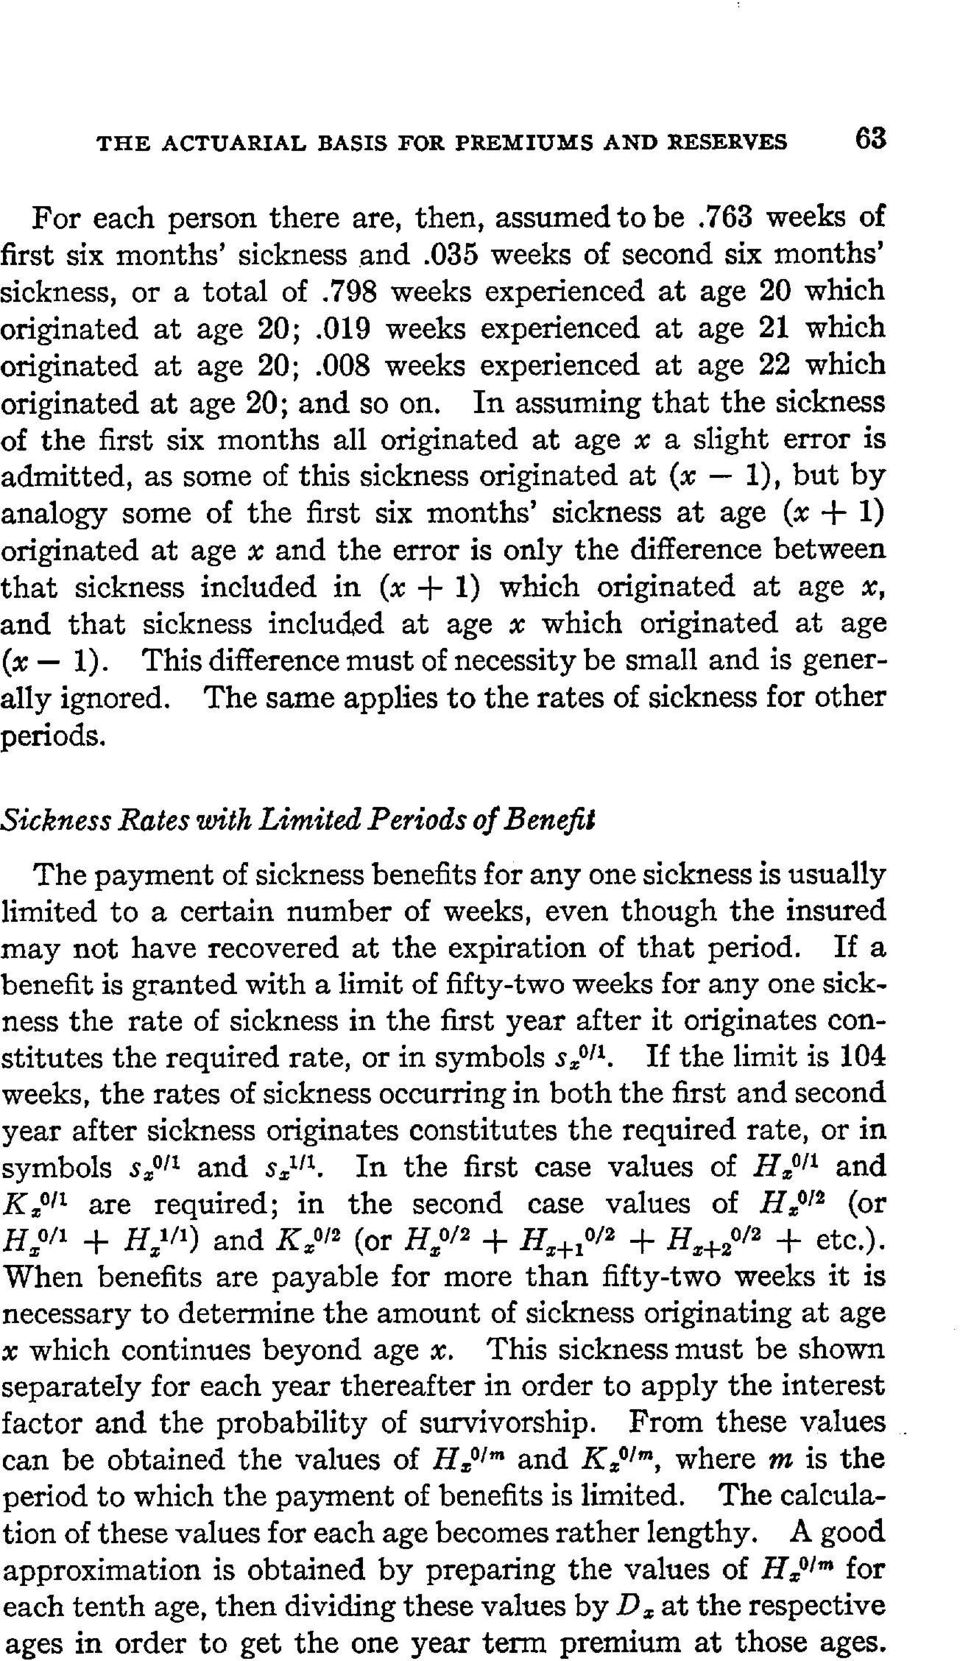 In assuming that the sickness of the first six months all originated at age x a slight error is admitted, as some of this sickness originated at (x -- 1), but by analogy some of the first six months'